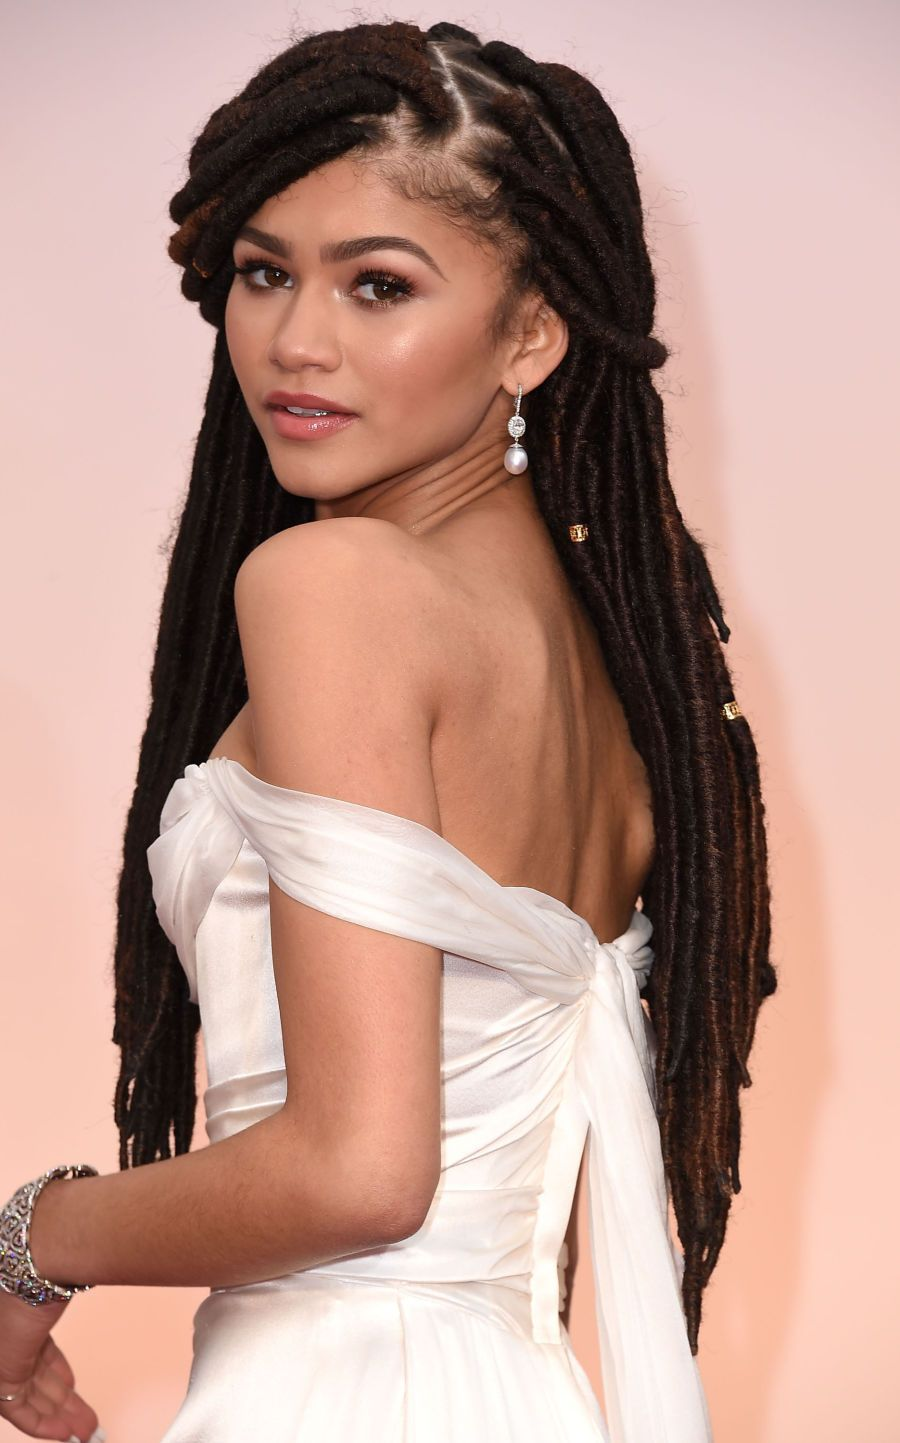 10-beauty-hacks-celebs-use-to-look-flawless-and-you-can-too3